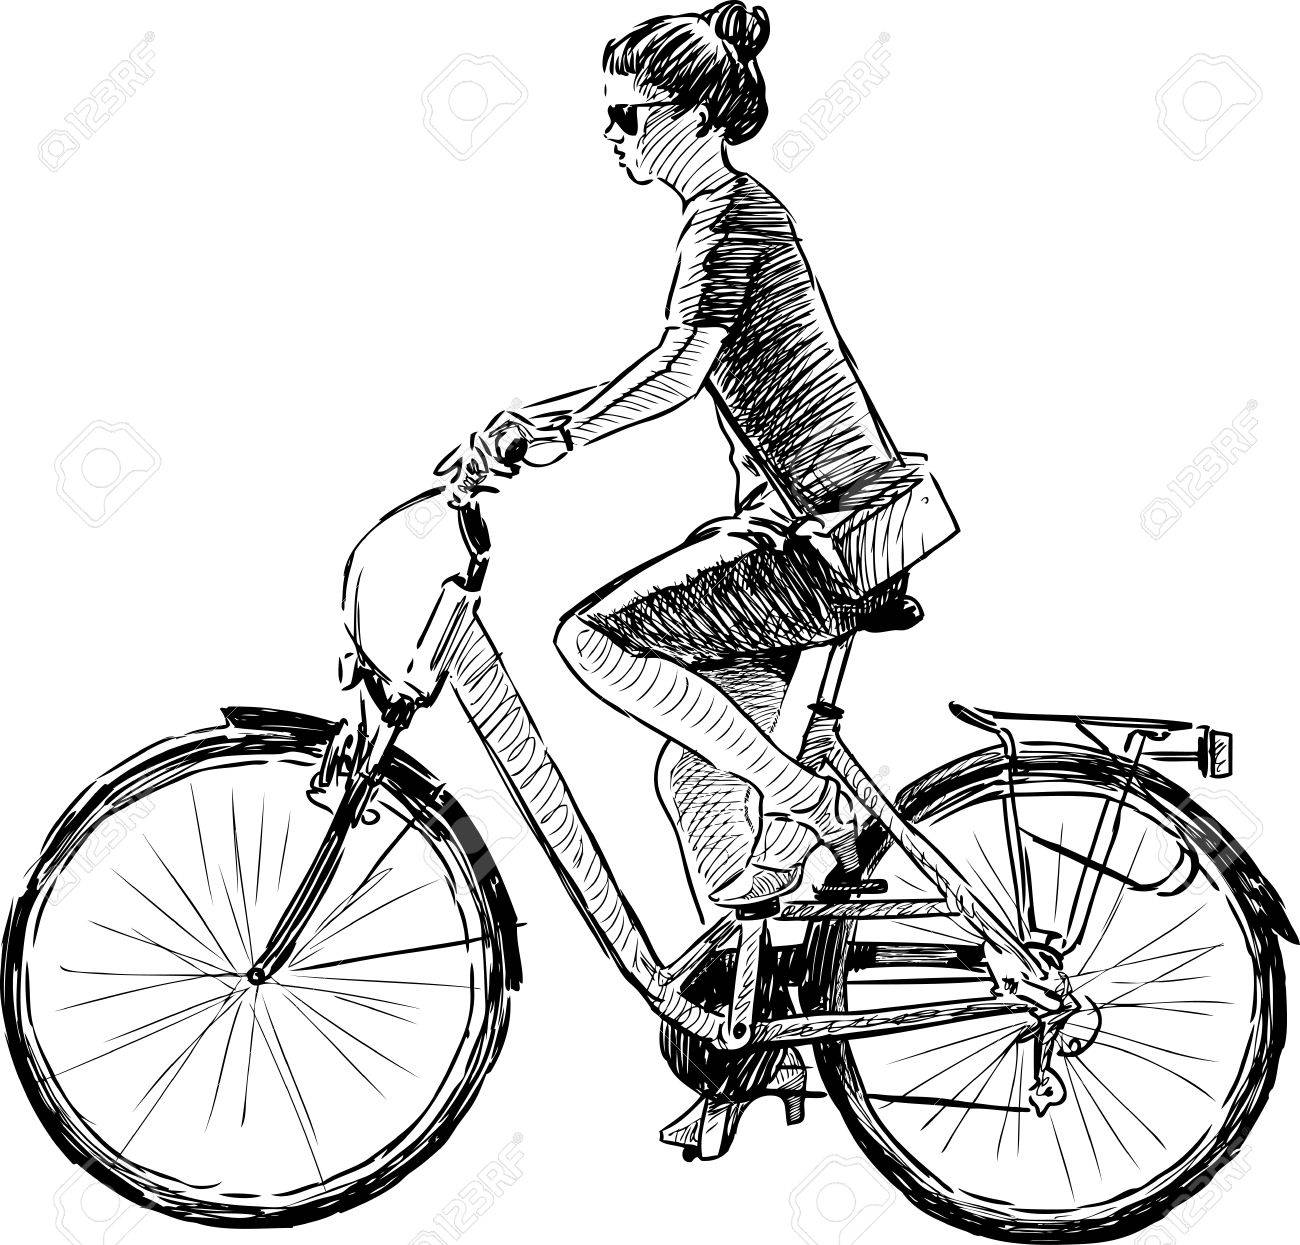 1300x1245 Sketch Of A Girl Riding A Bike Royalty Free Cliparts, Vectors,